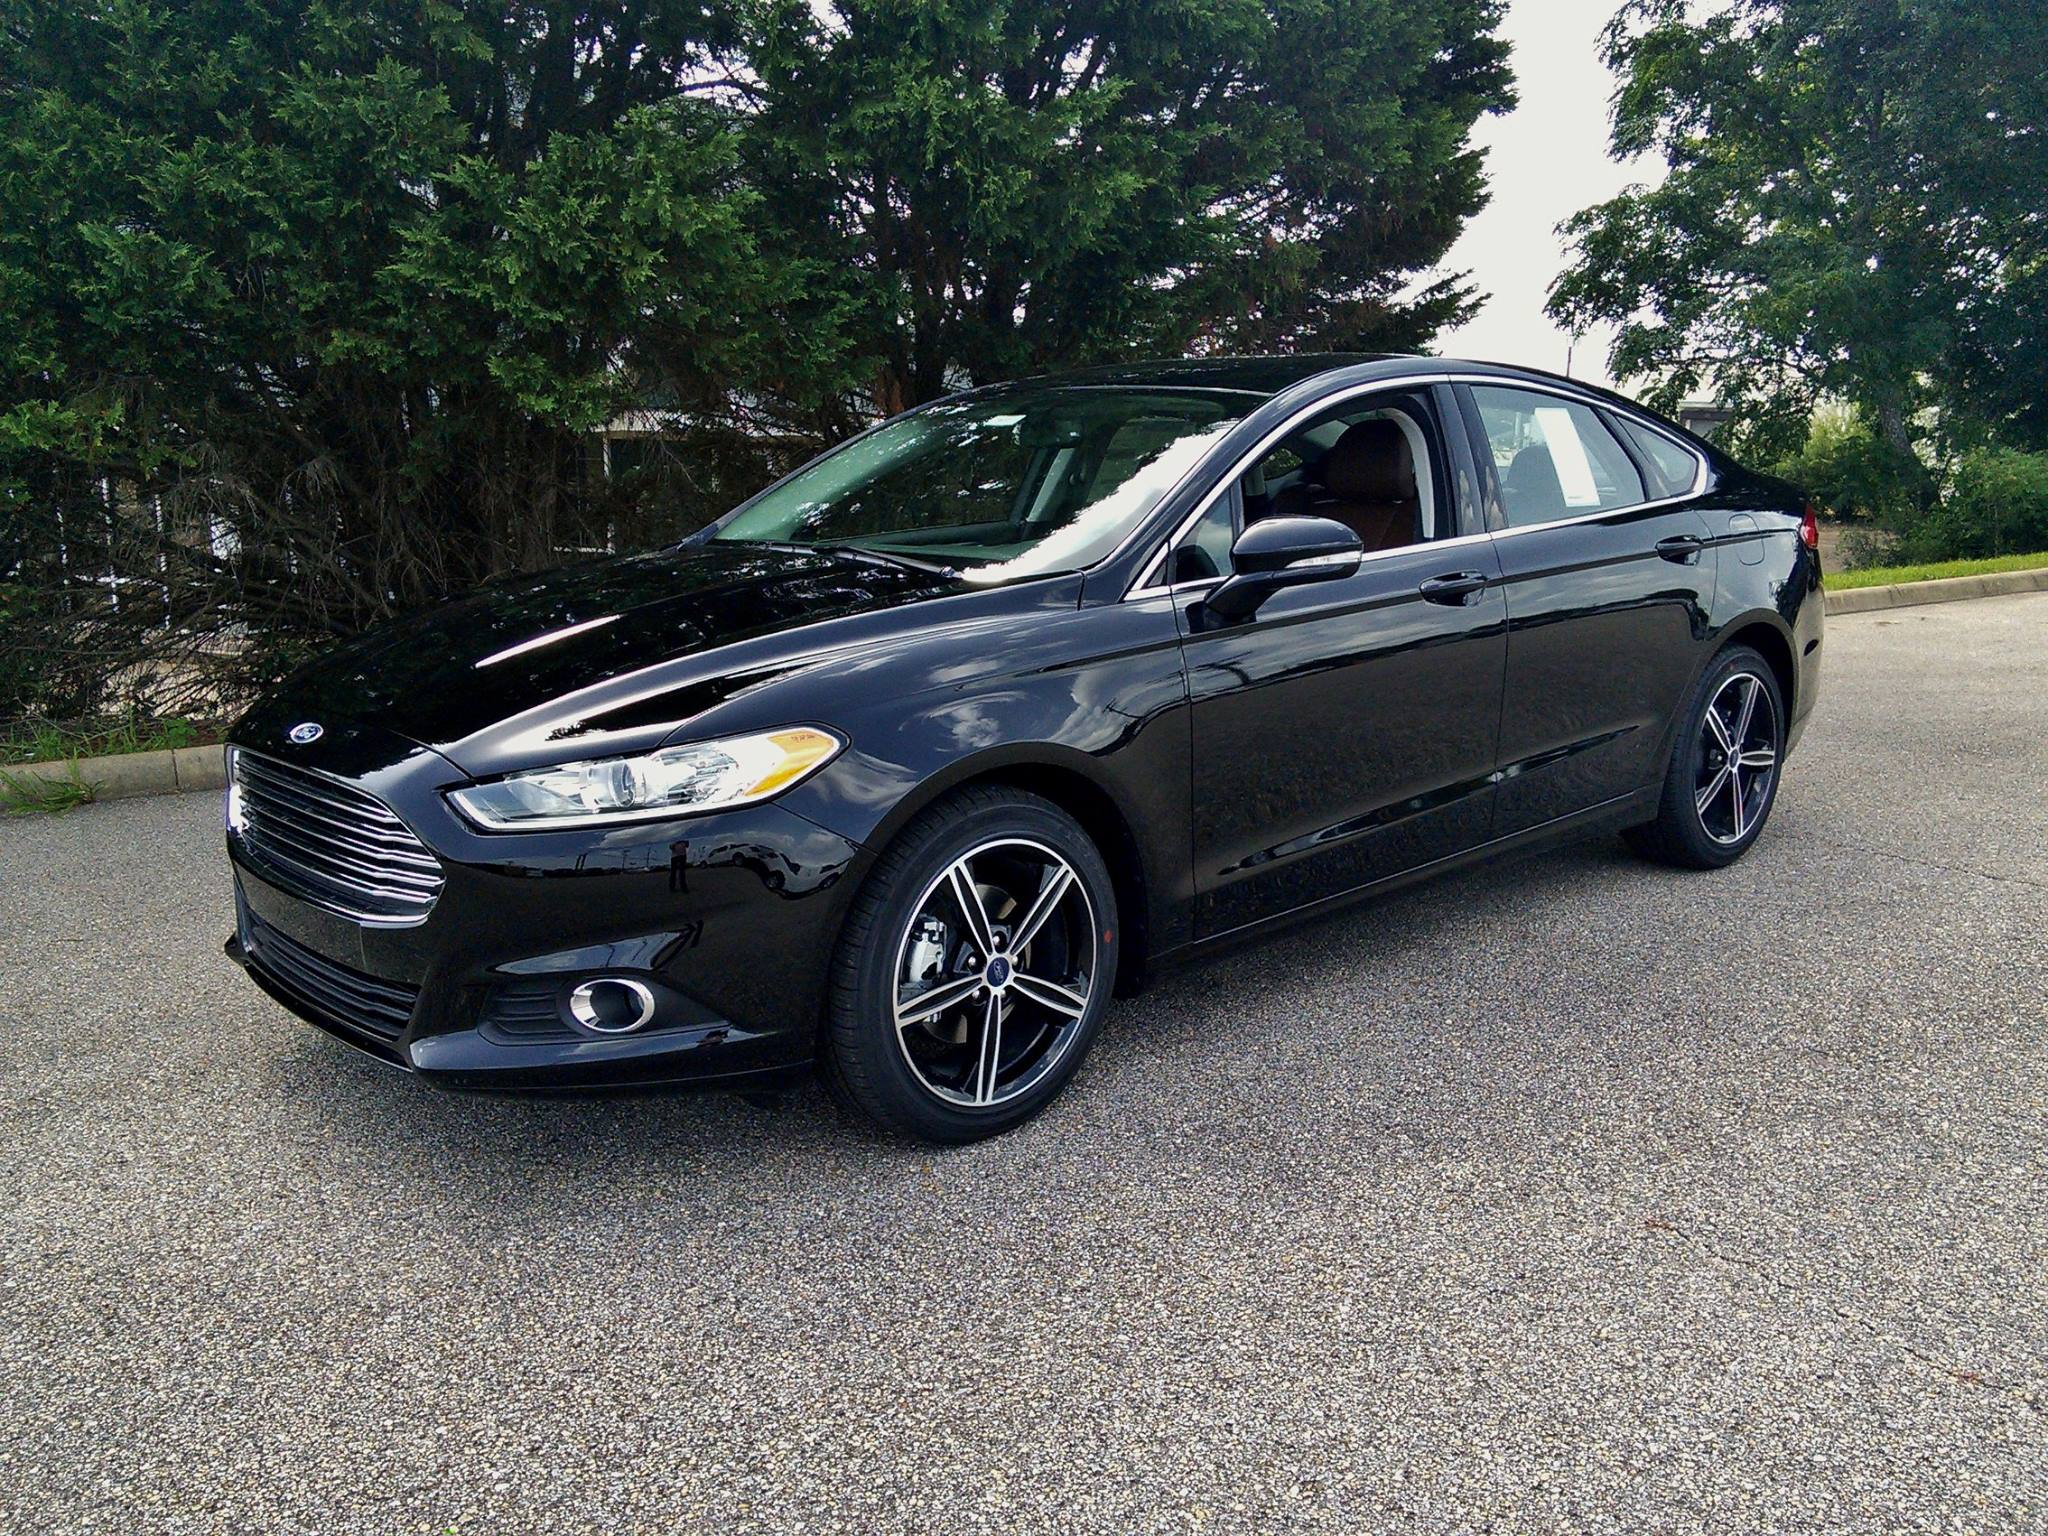 Ed Sherling Ford >> Apply For Financing On New Cars At Ed Sherling Ford Ed